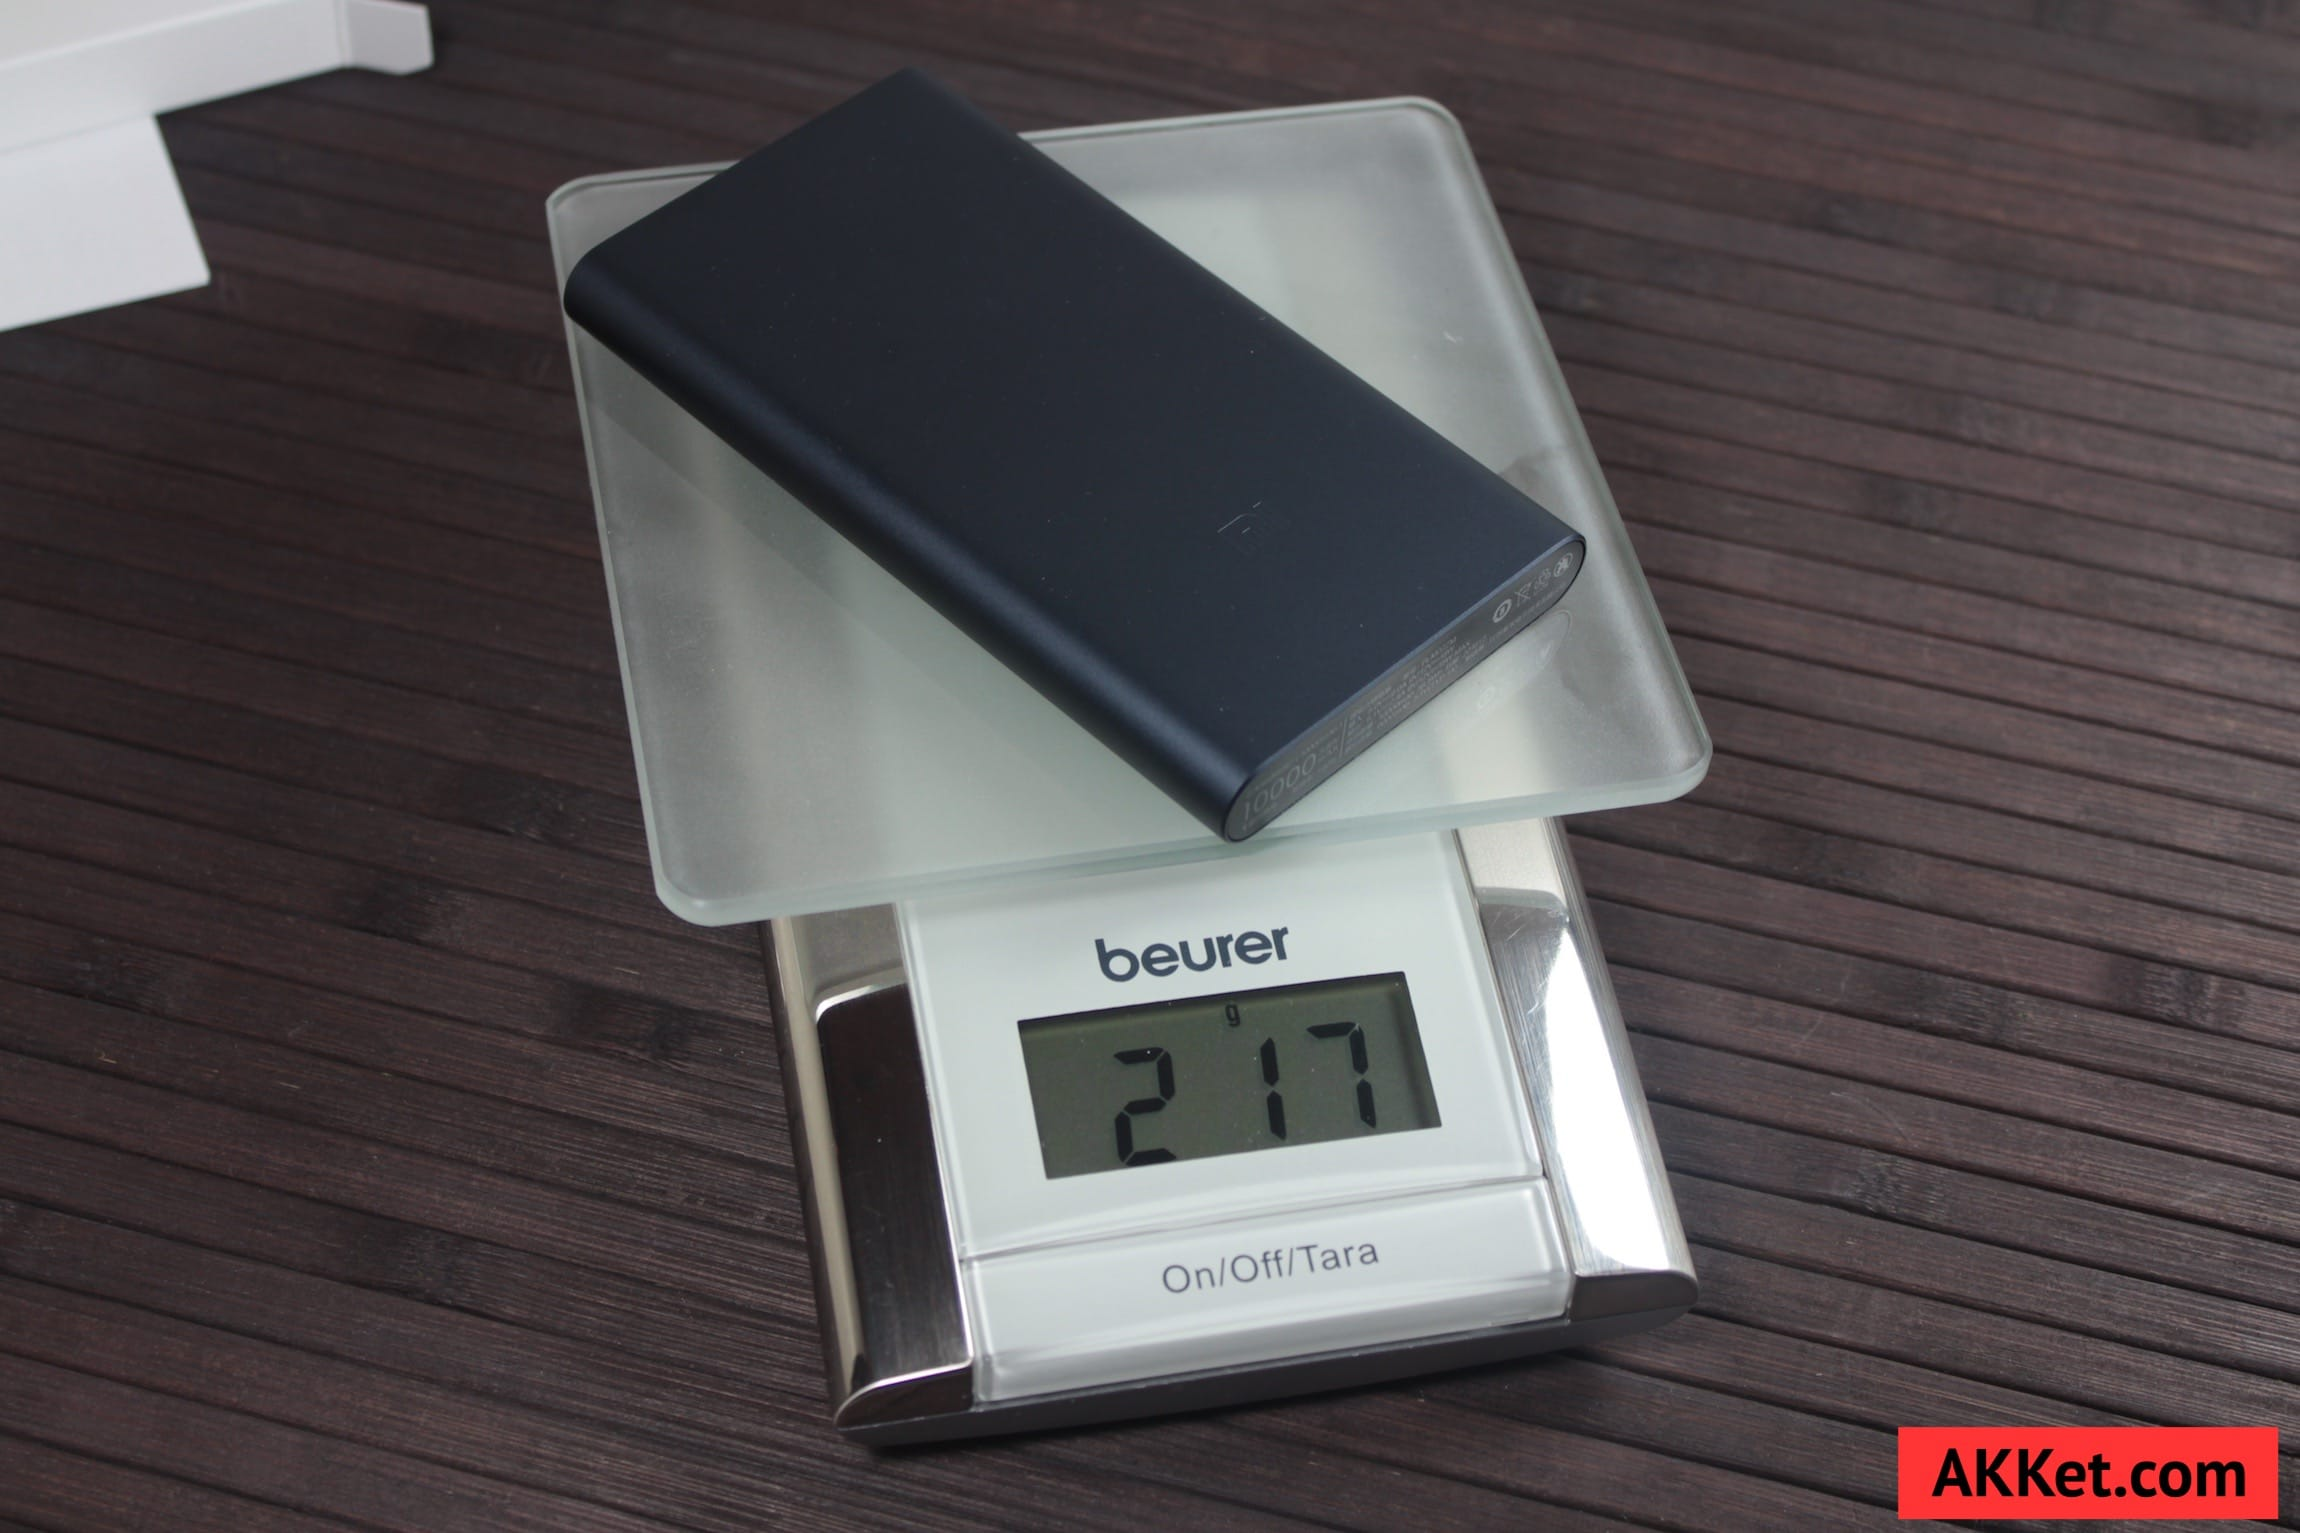 Xiaomi Mi Power Bank 10000 mAh Review iPhone SE AKKet.com 16